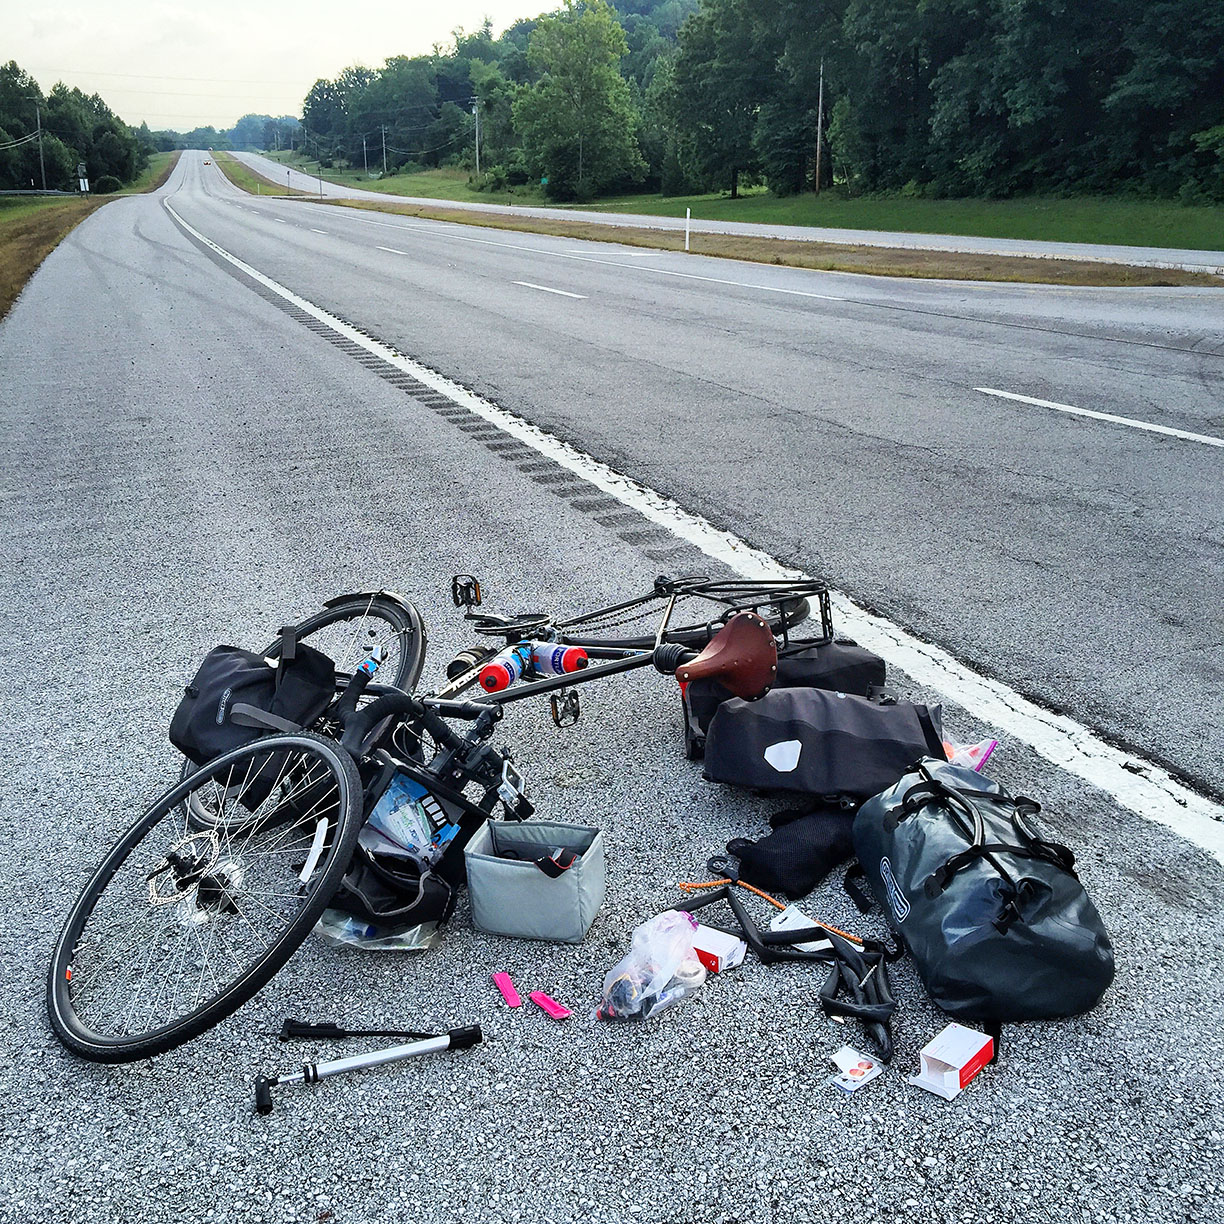 First flat tire today at mile 760! I didn't realize it, but I was also headed 7 miles down the road in the wrong direction. If I didn't get this flat tire I would have just kept going. #transam2016 #readthemap #dumbass #biketouring #flattire